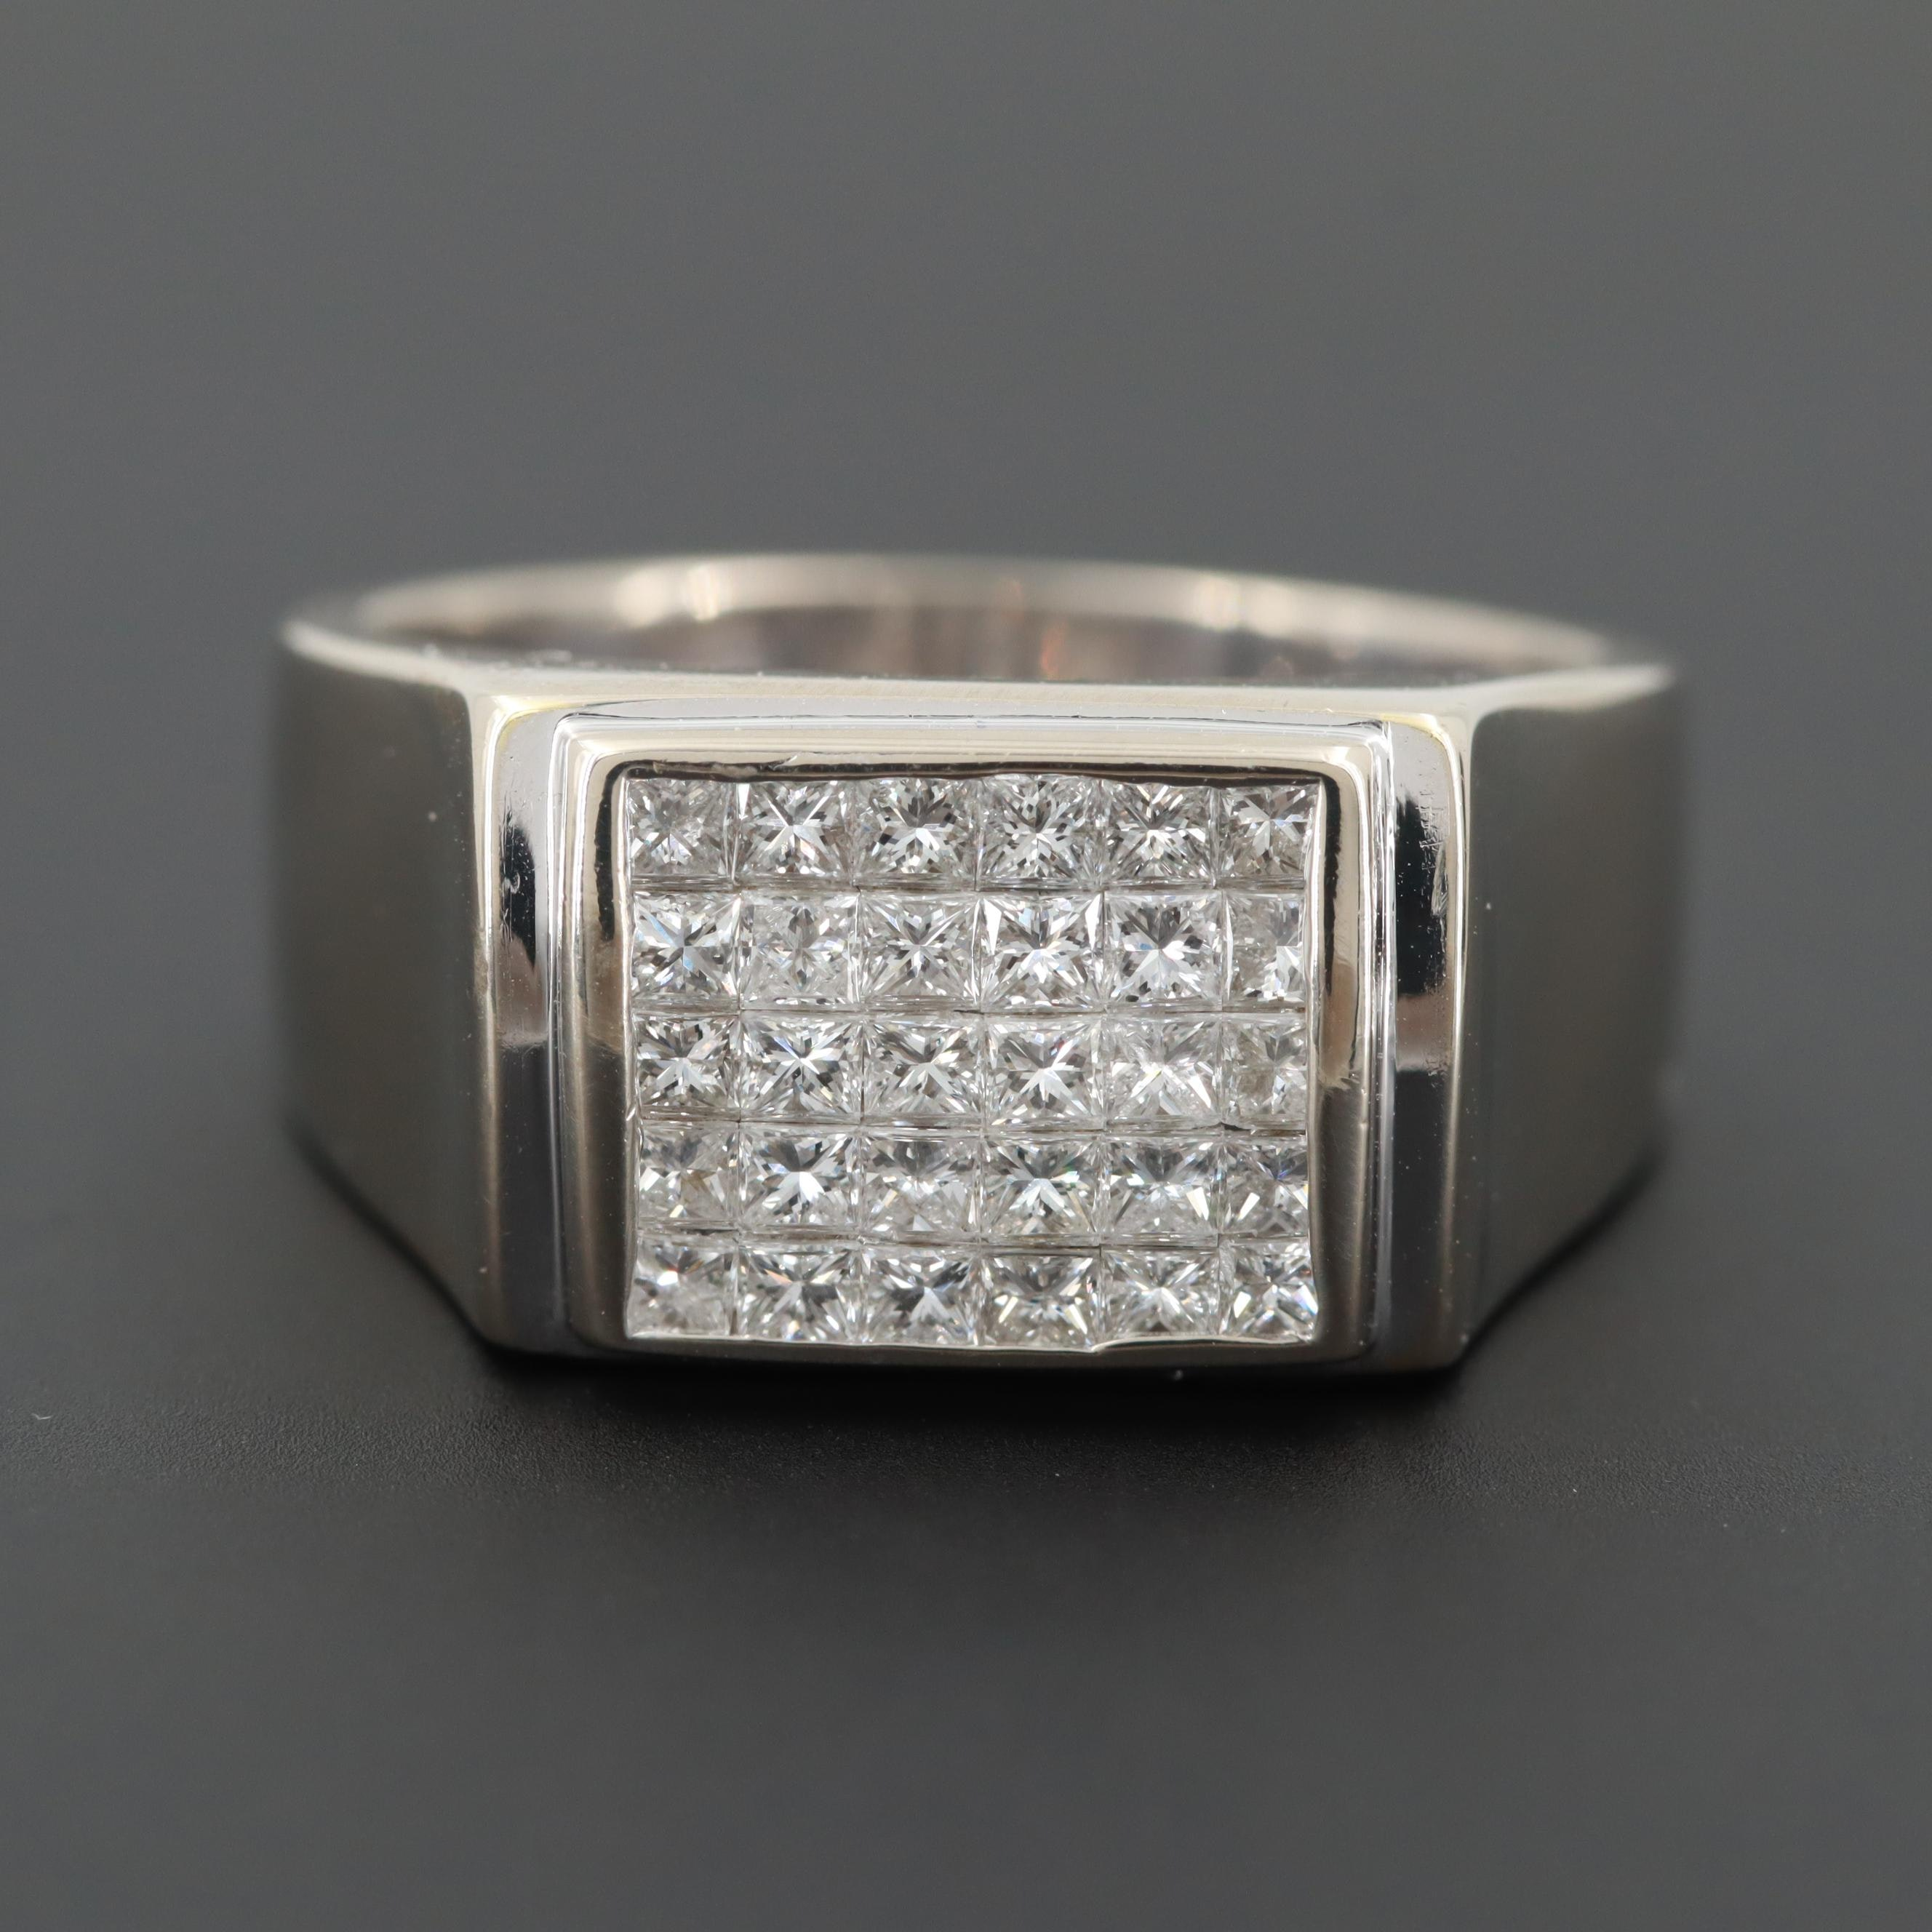 14K White Gold 1.05 CT Diamond Ring